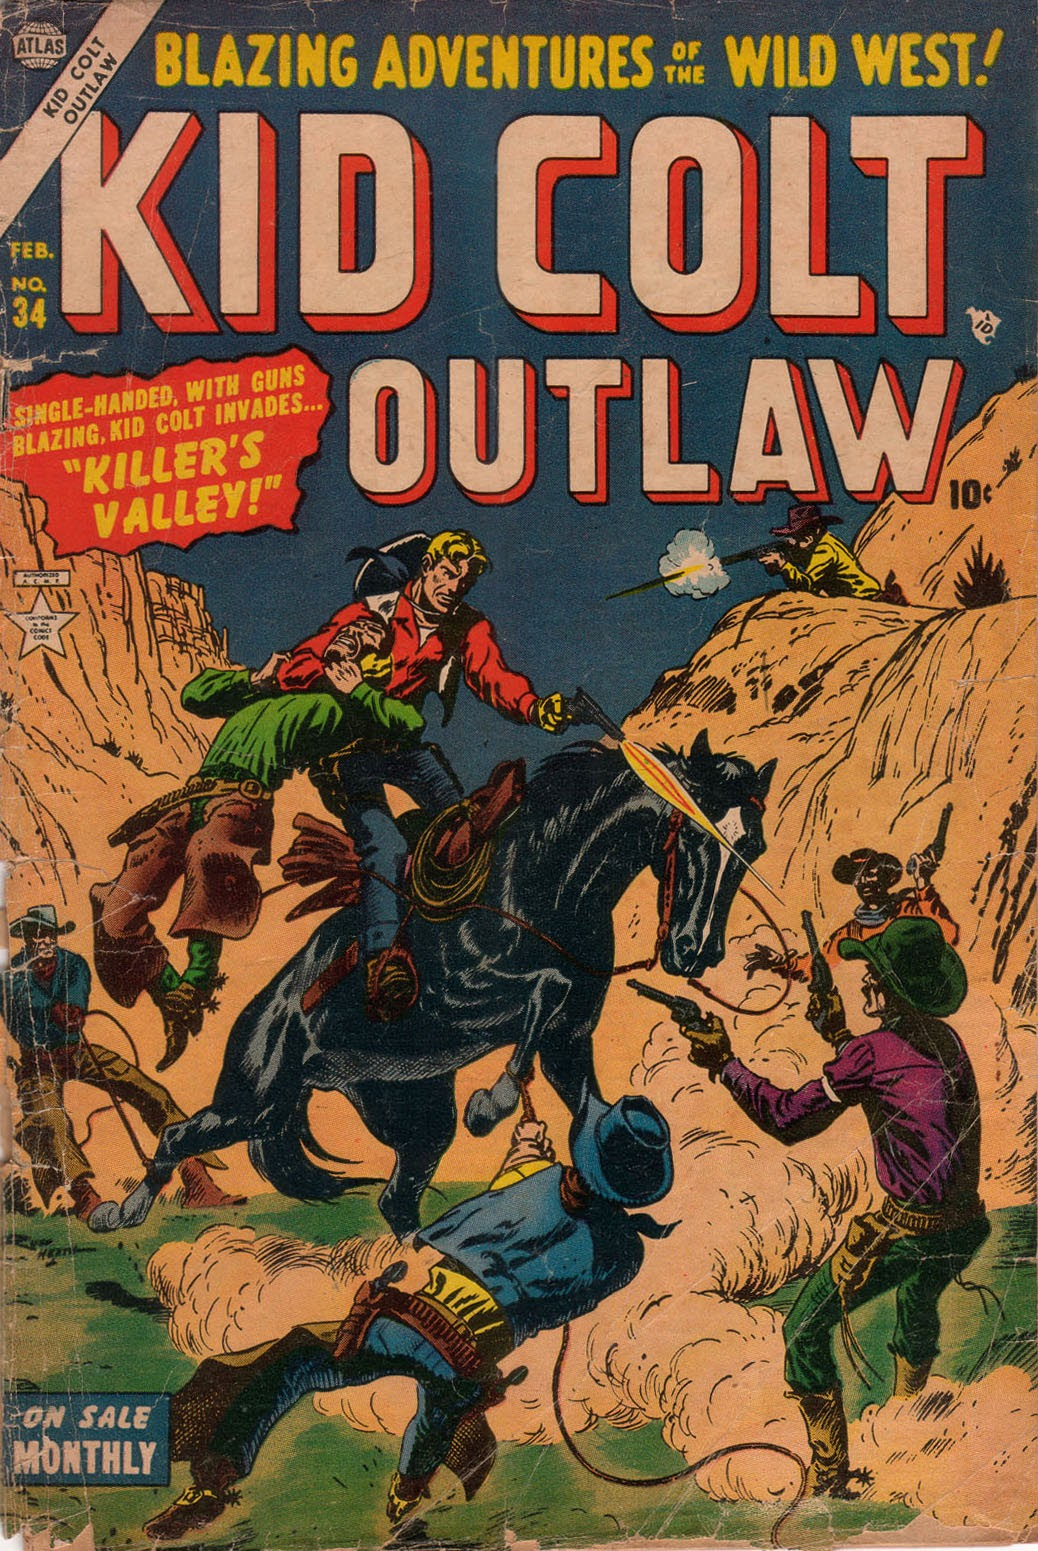 Kid Colt Outlaw issue 34 - Page 1